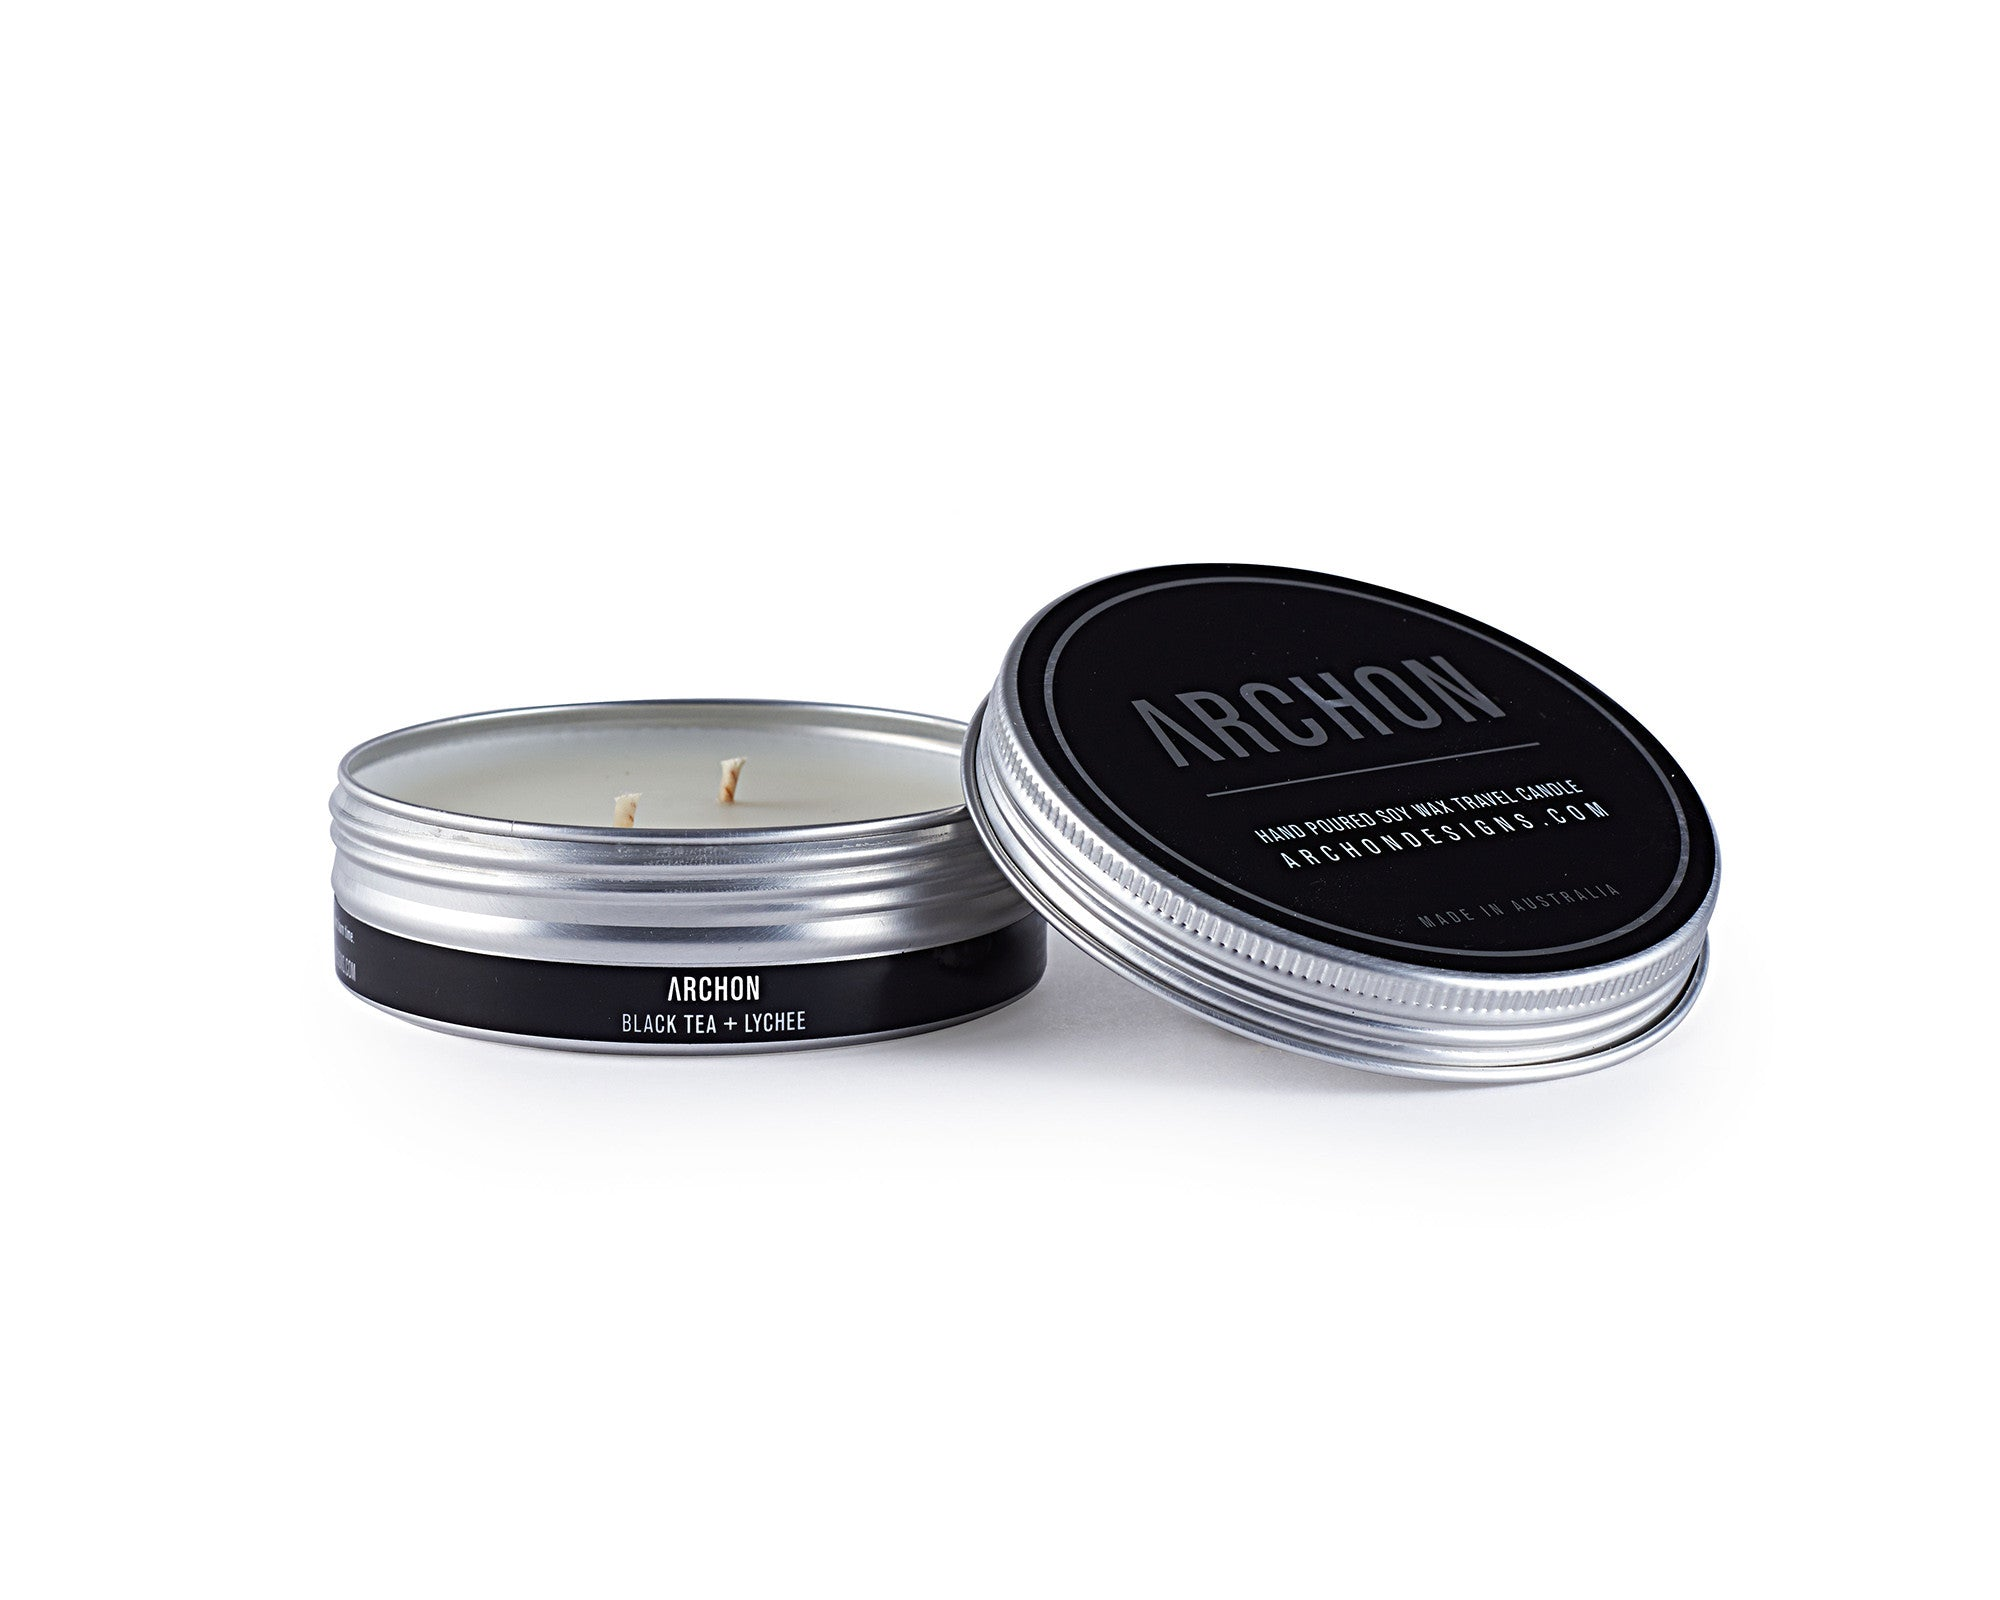 New Product! >> Scented Soy Wax Travel Candles AVAILABLE ONLINE!